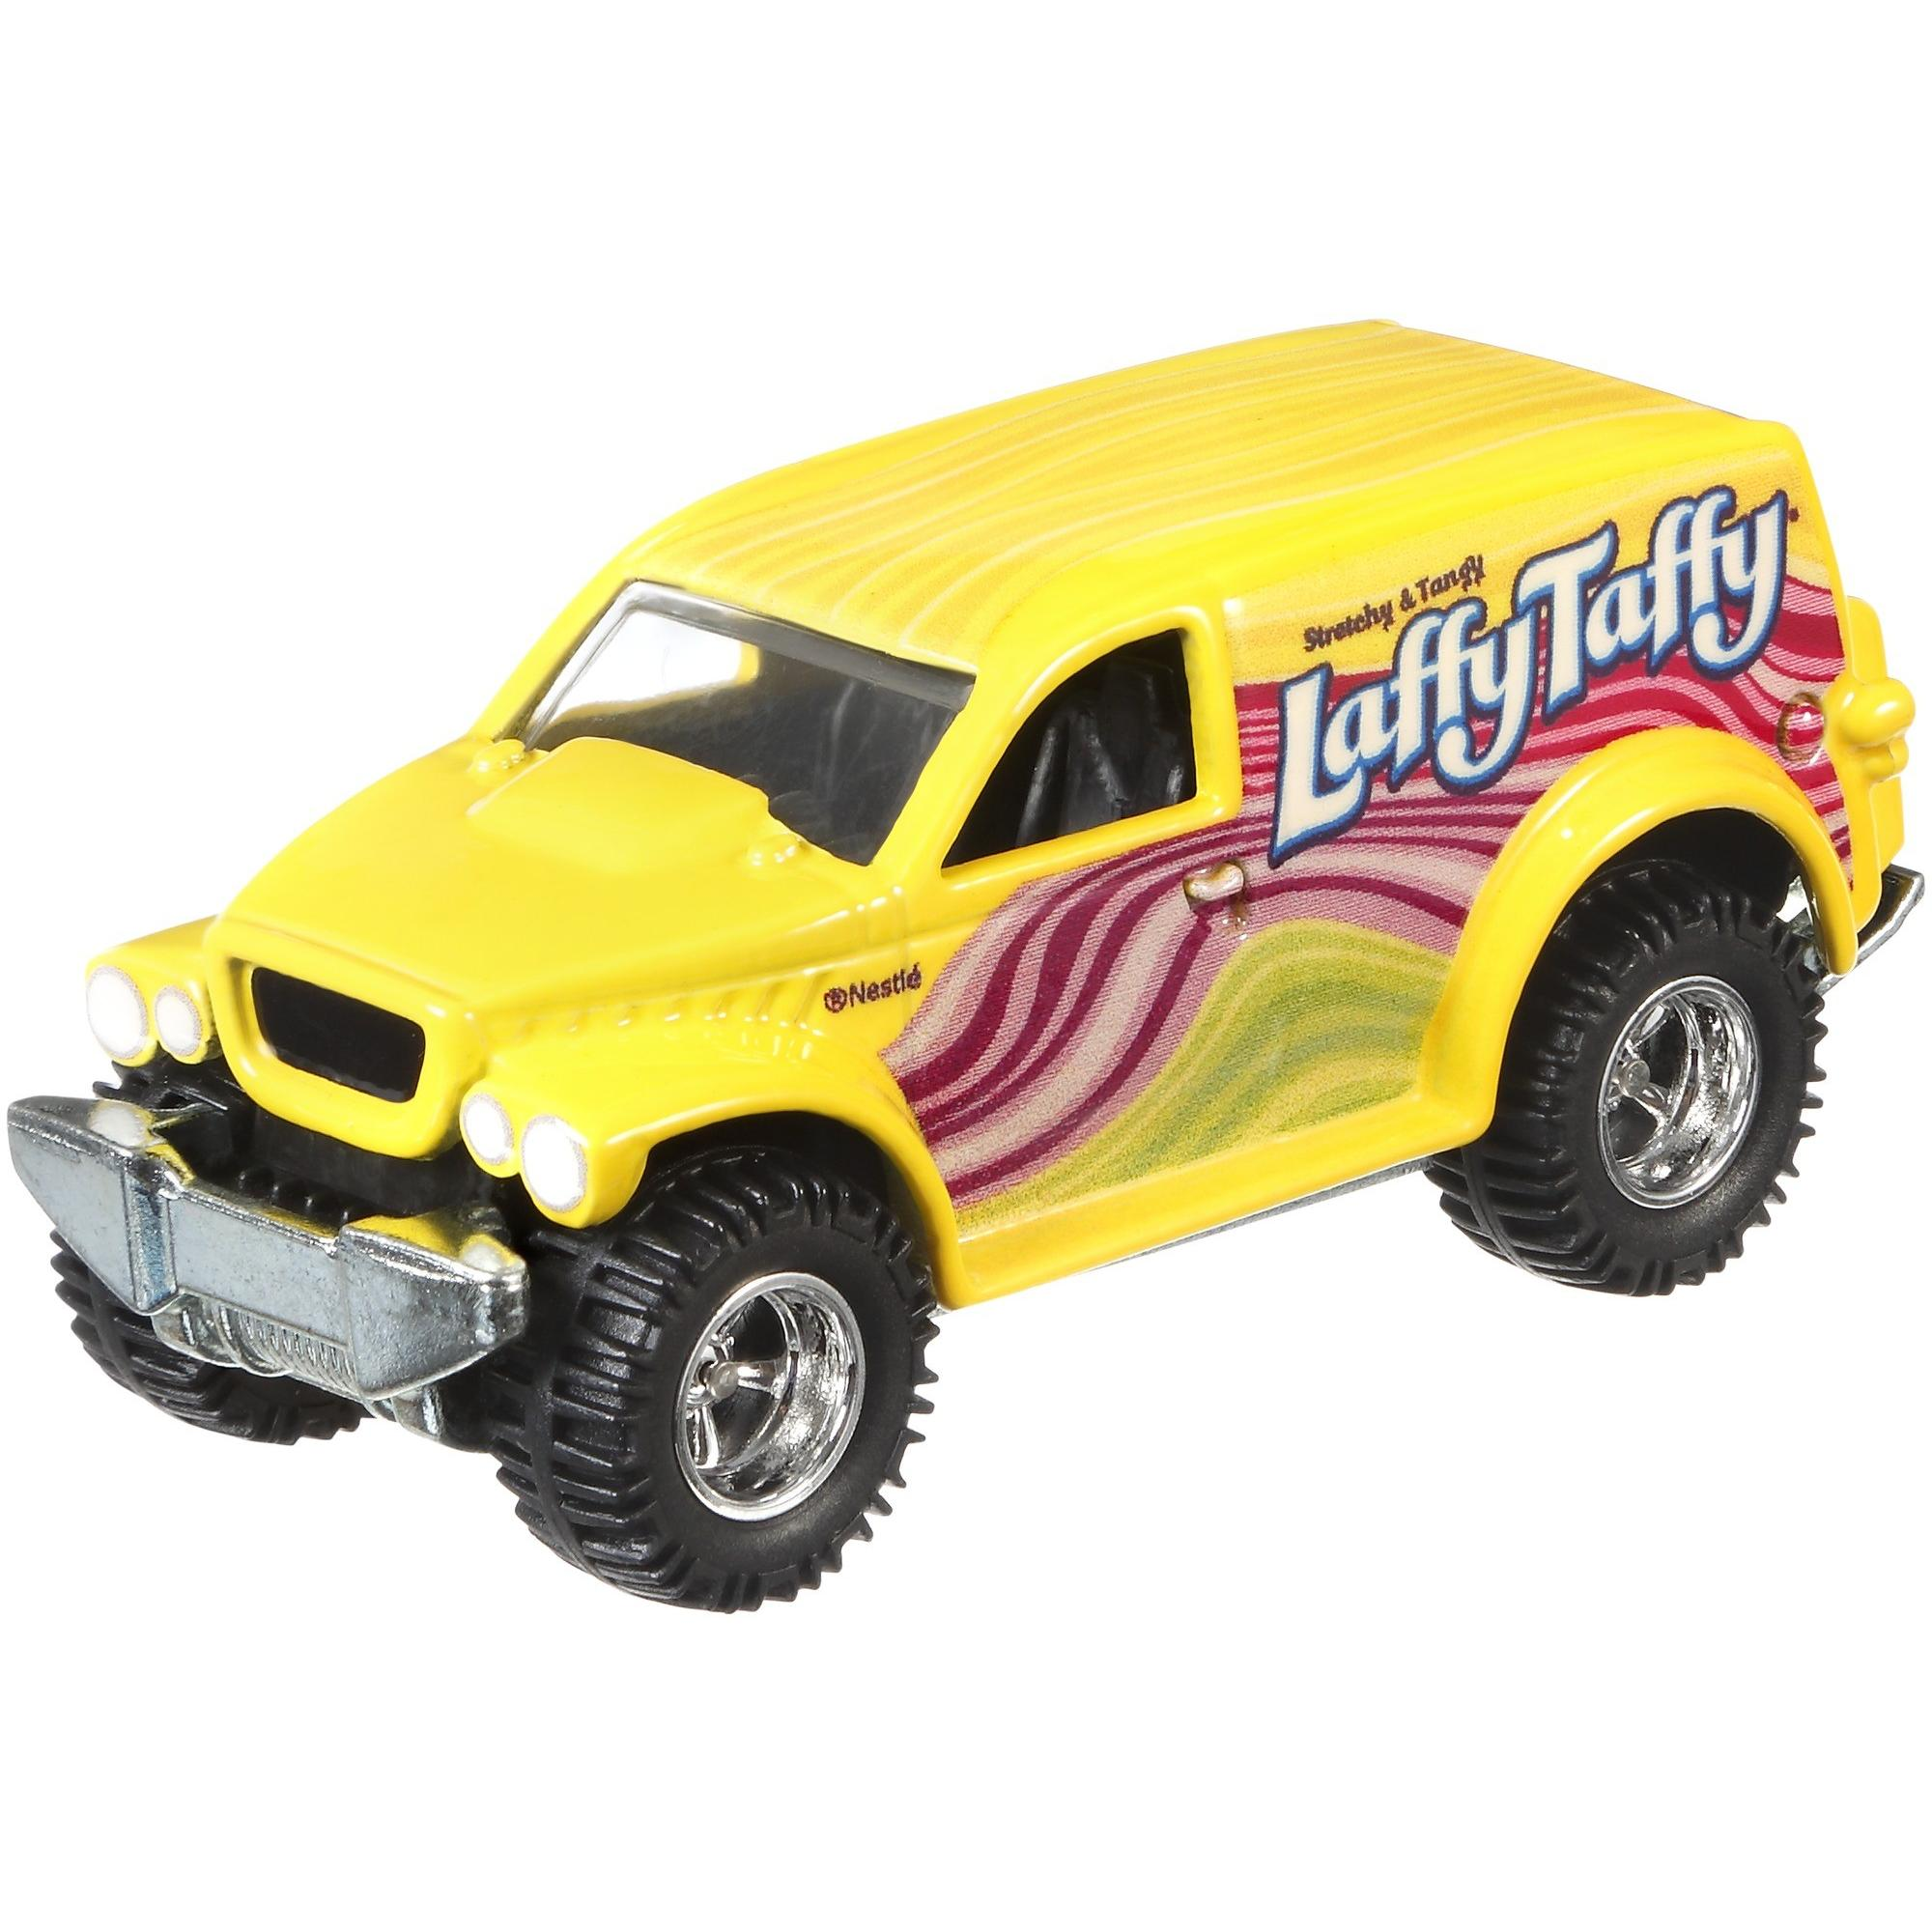 Hot Wheels Laffy Taffy Power Panel Vehicle by Mattel